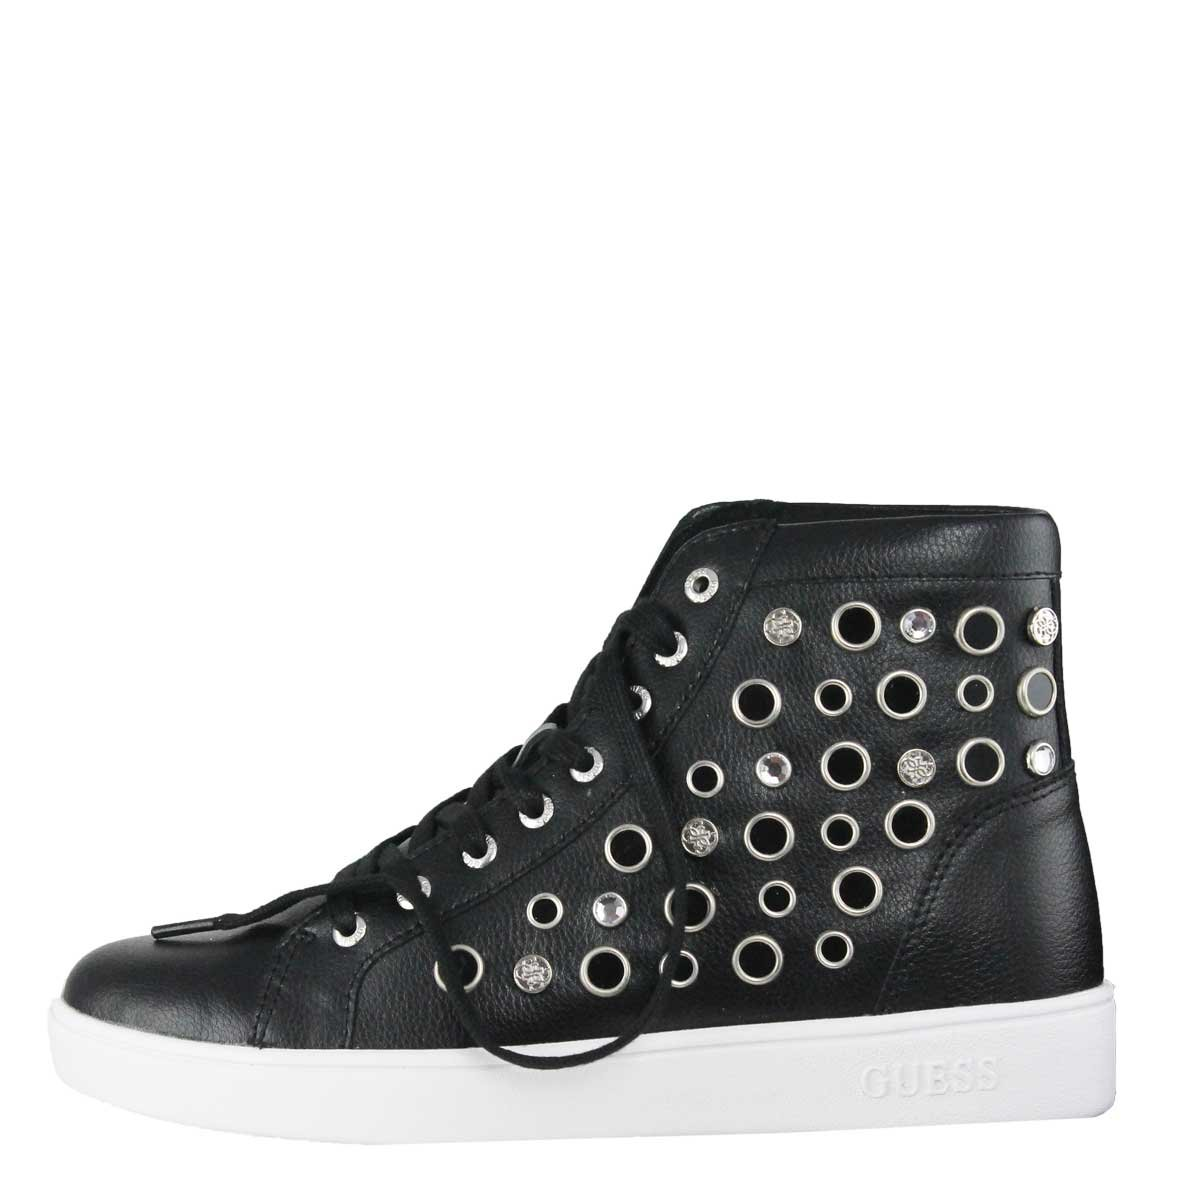 Guess GERTA Sneakers alte black Sneakers da donna